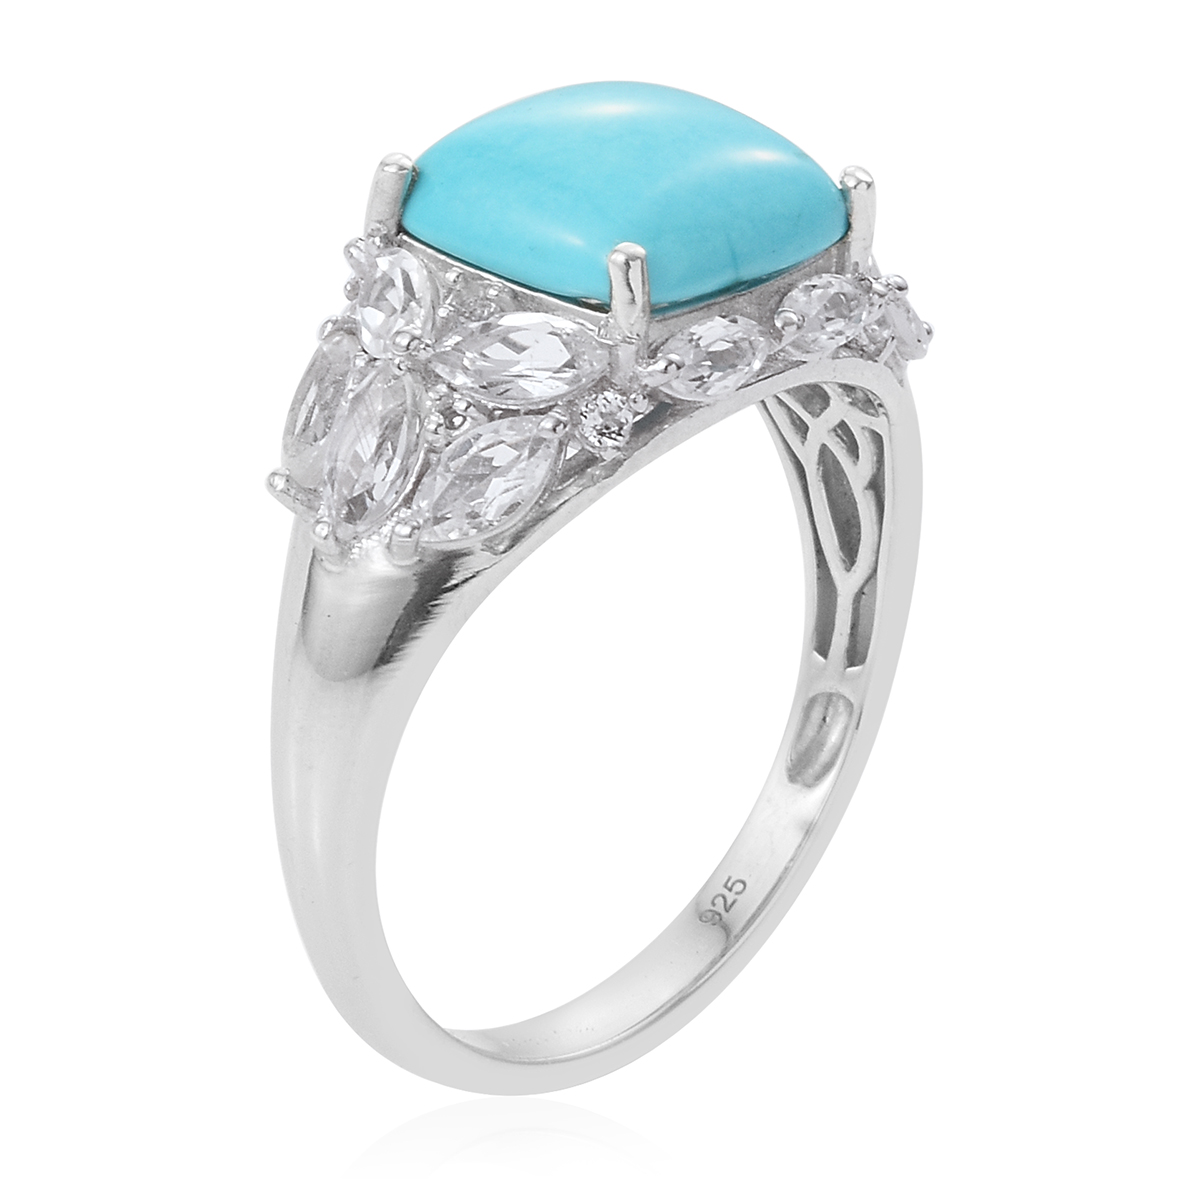 Arizona Sleeping Beauty Turquoise, White Topaz Ring in Platinum Over Sterling Silver (Size 8.0) 5.76 ctw